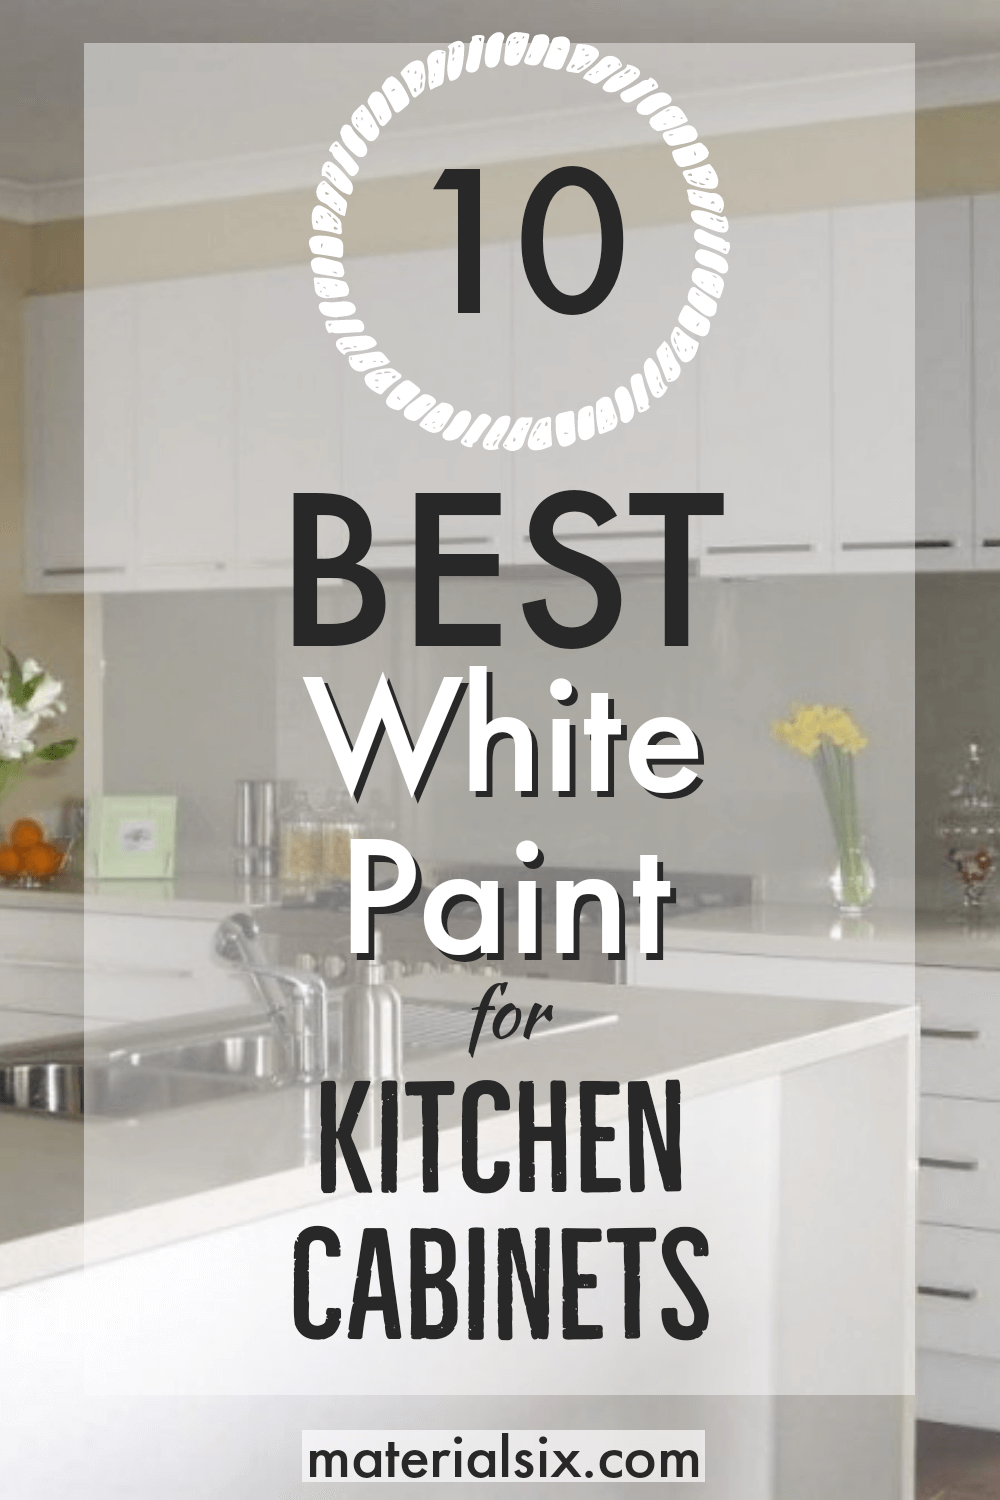 10 Best White Paint For Kitchen Cabinets Materialsix Com In 2020 Painting Kitchen Cabinets Kitchen Paint Best White Paint